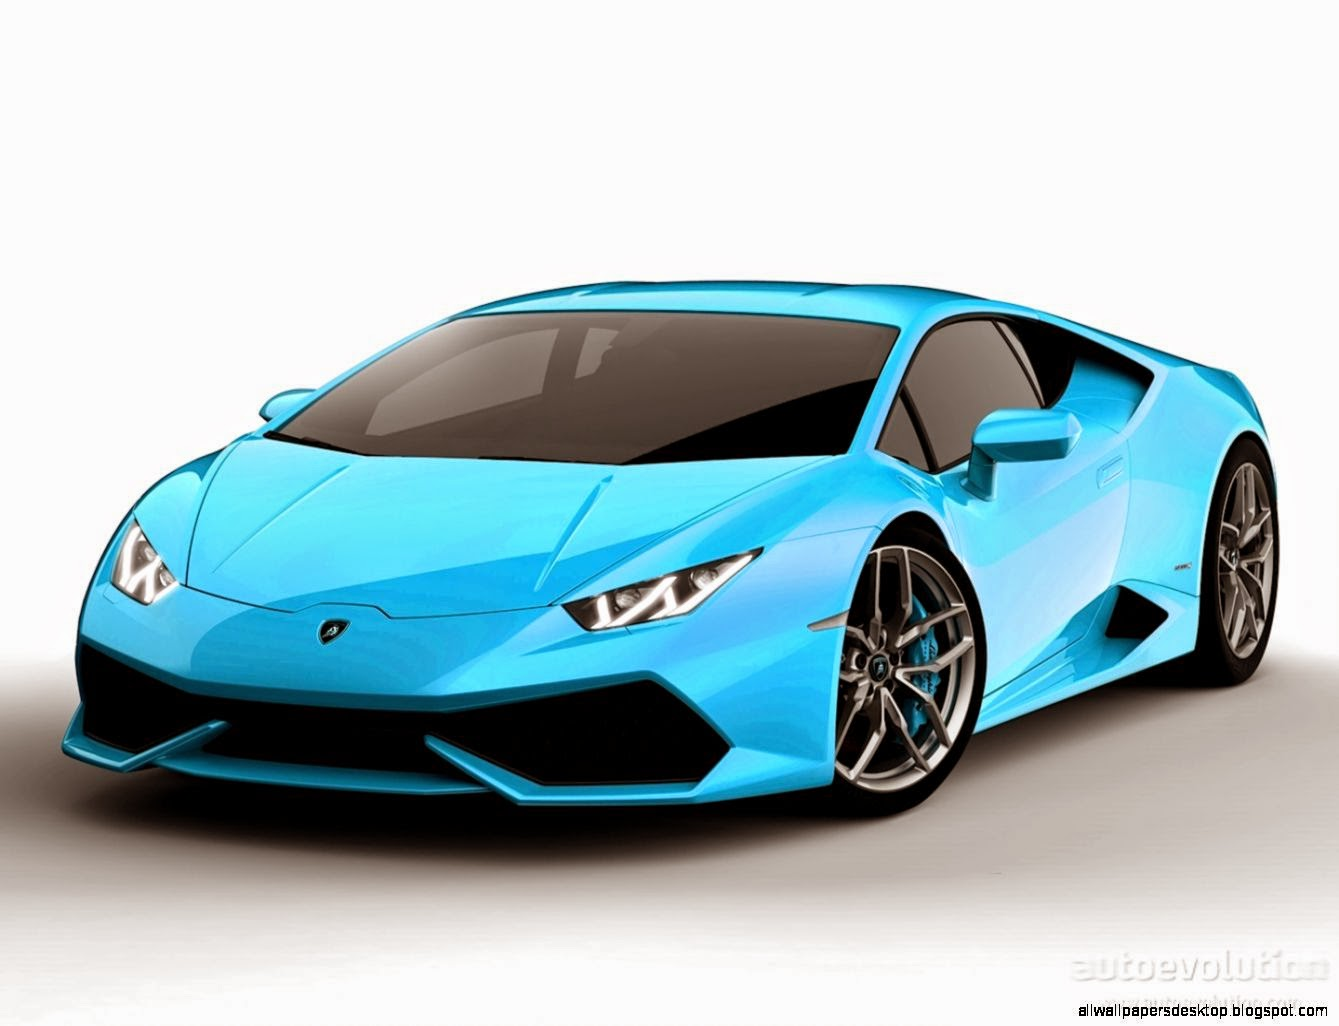 view original size 2015 lamborghini huracan oakley widescreen background wallpaper - Lamborghini Huracan Wallpaper